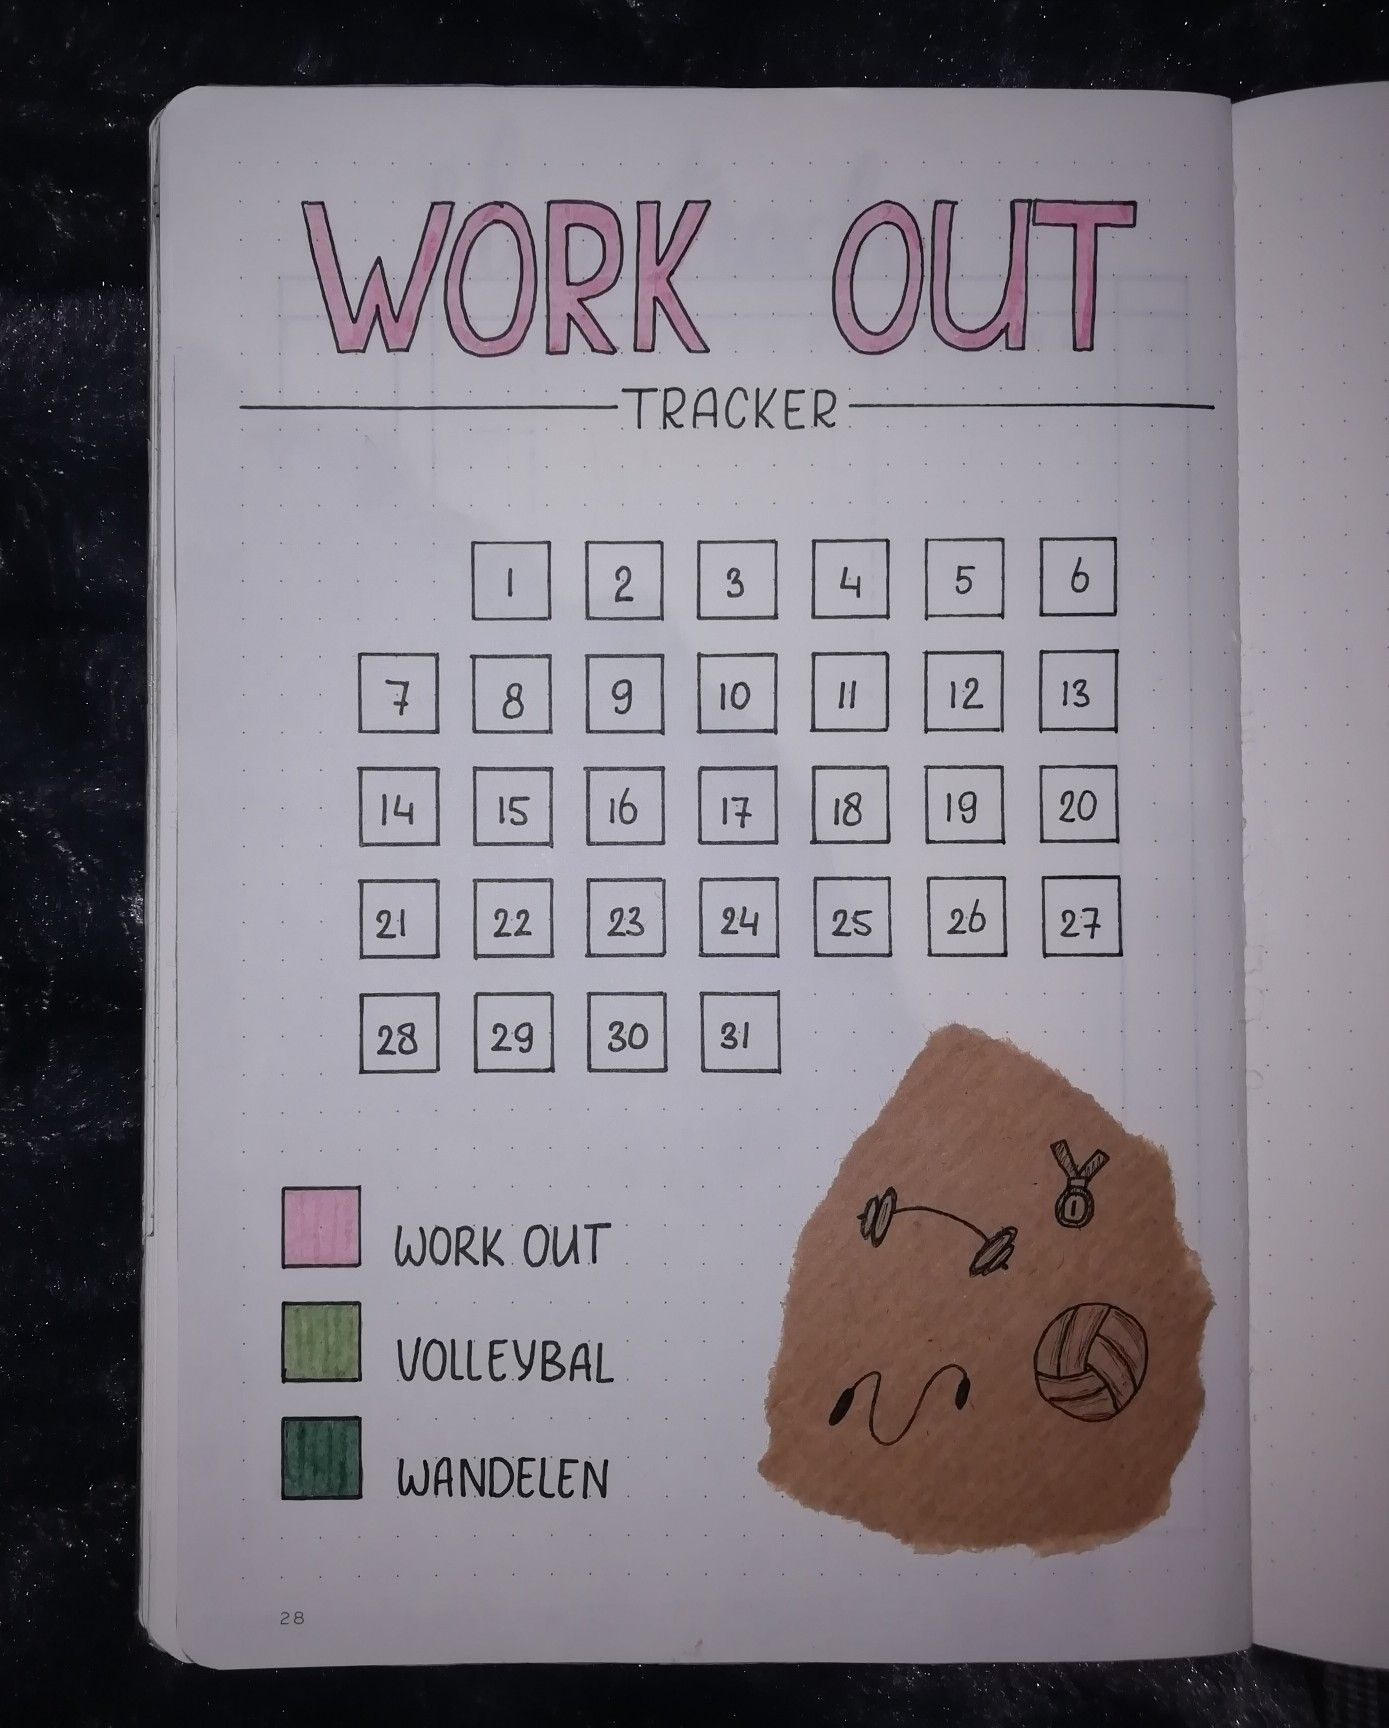 Workout tracker #augustbulletjournal